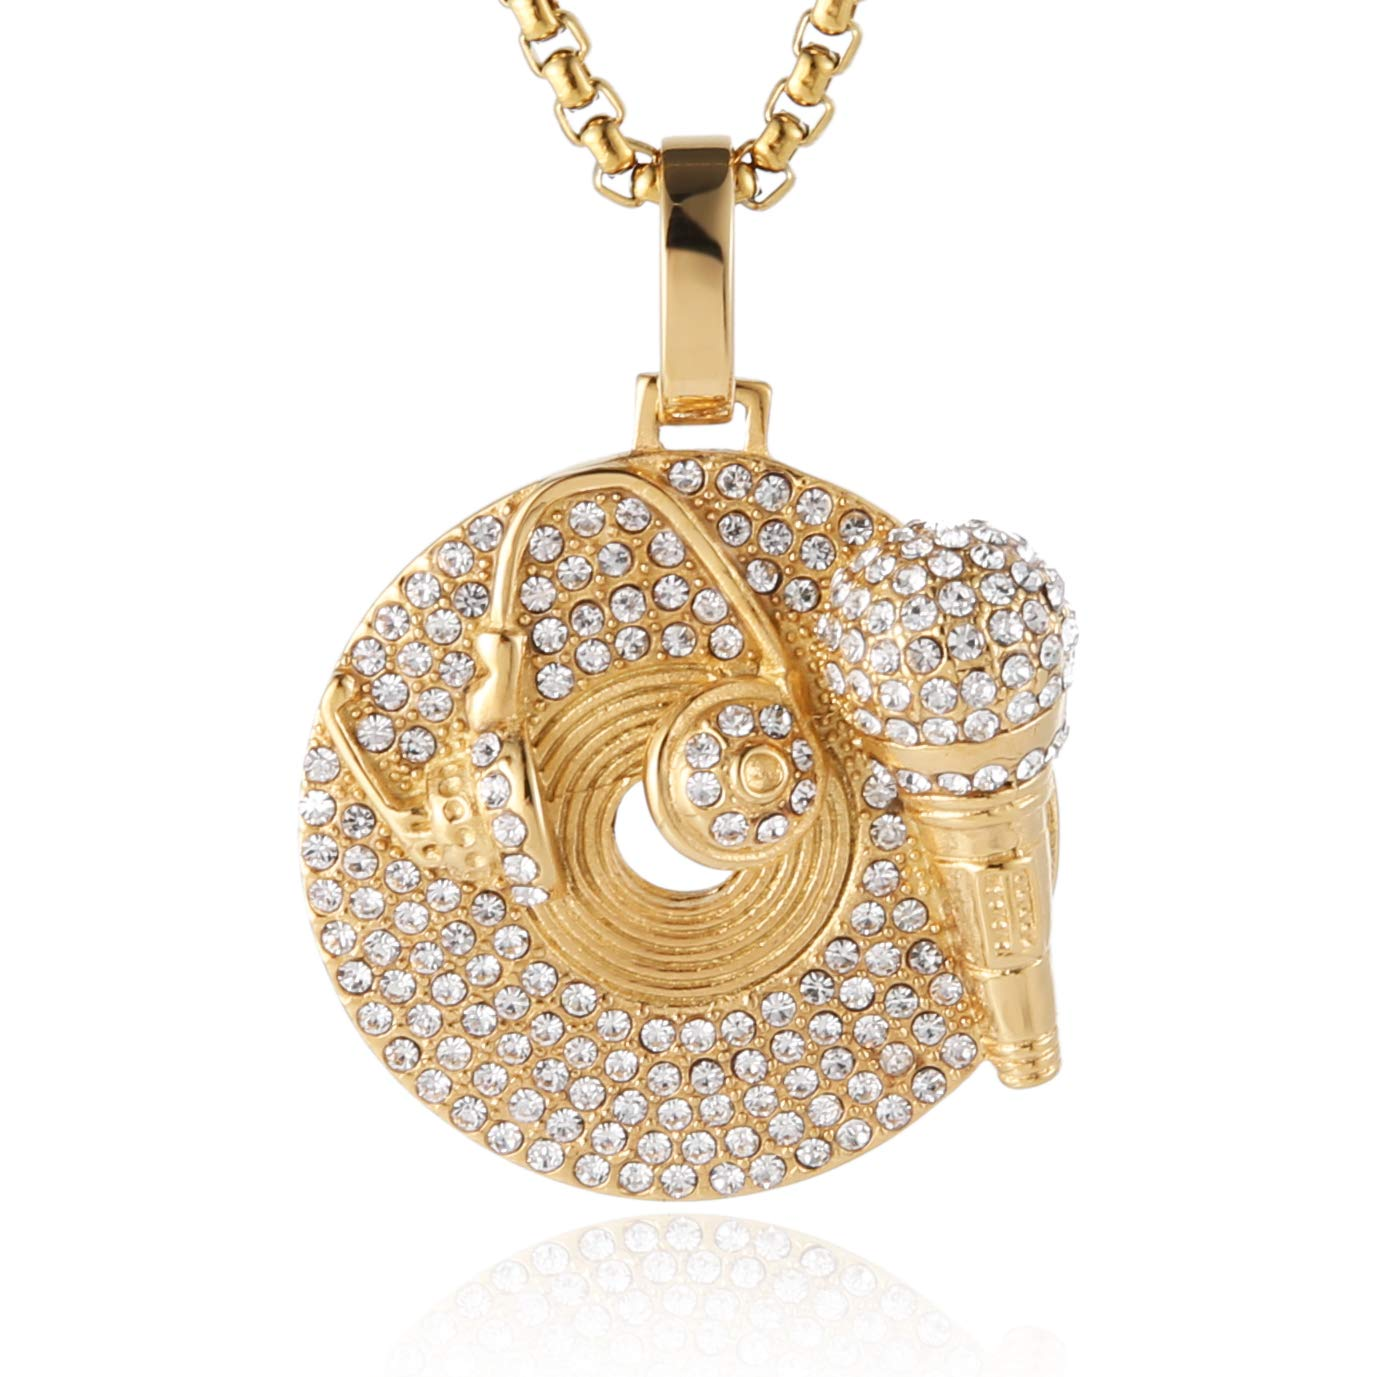 HZMAN Music Design CZ Iced Out Hip Hop Headset Microphone Record Pendant Necklace (Gold)